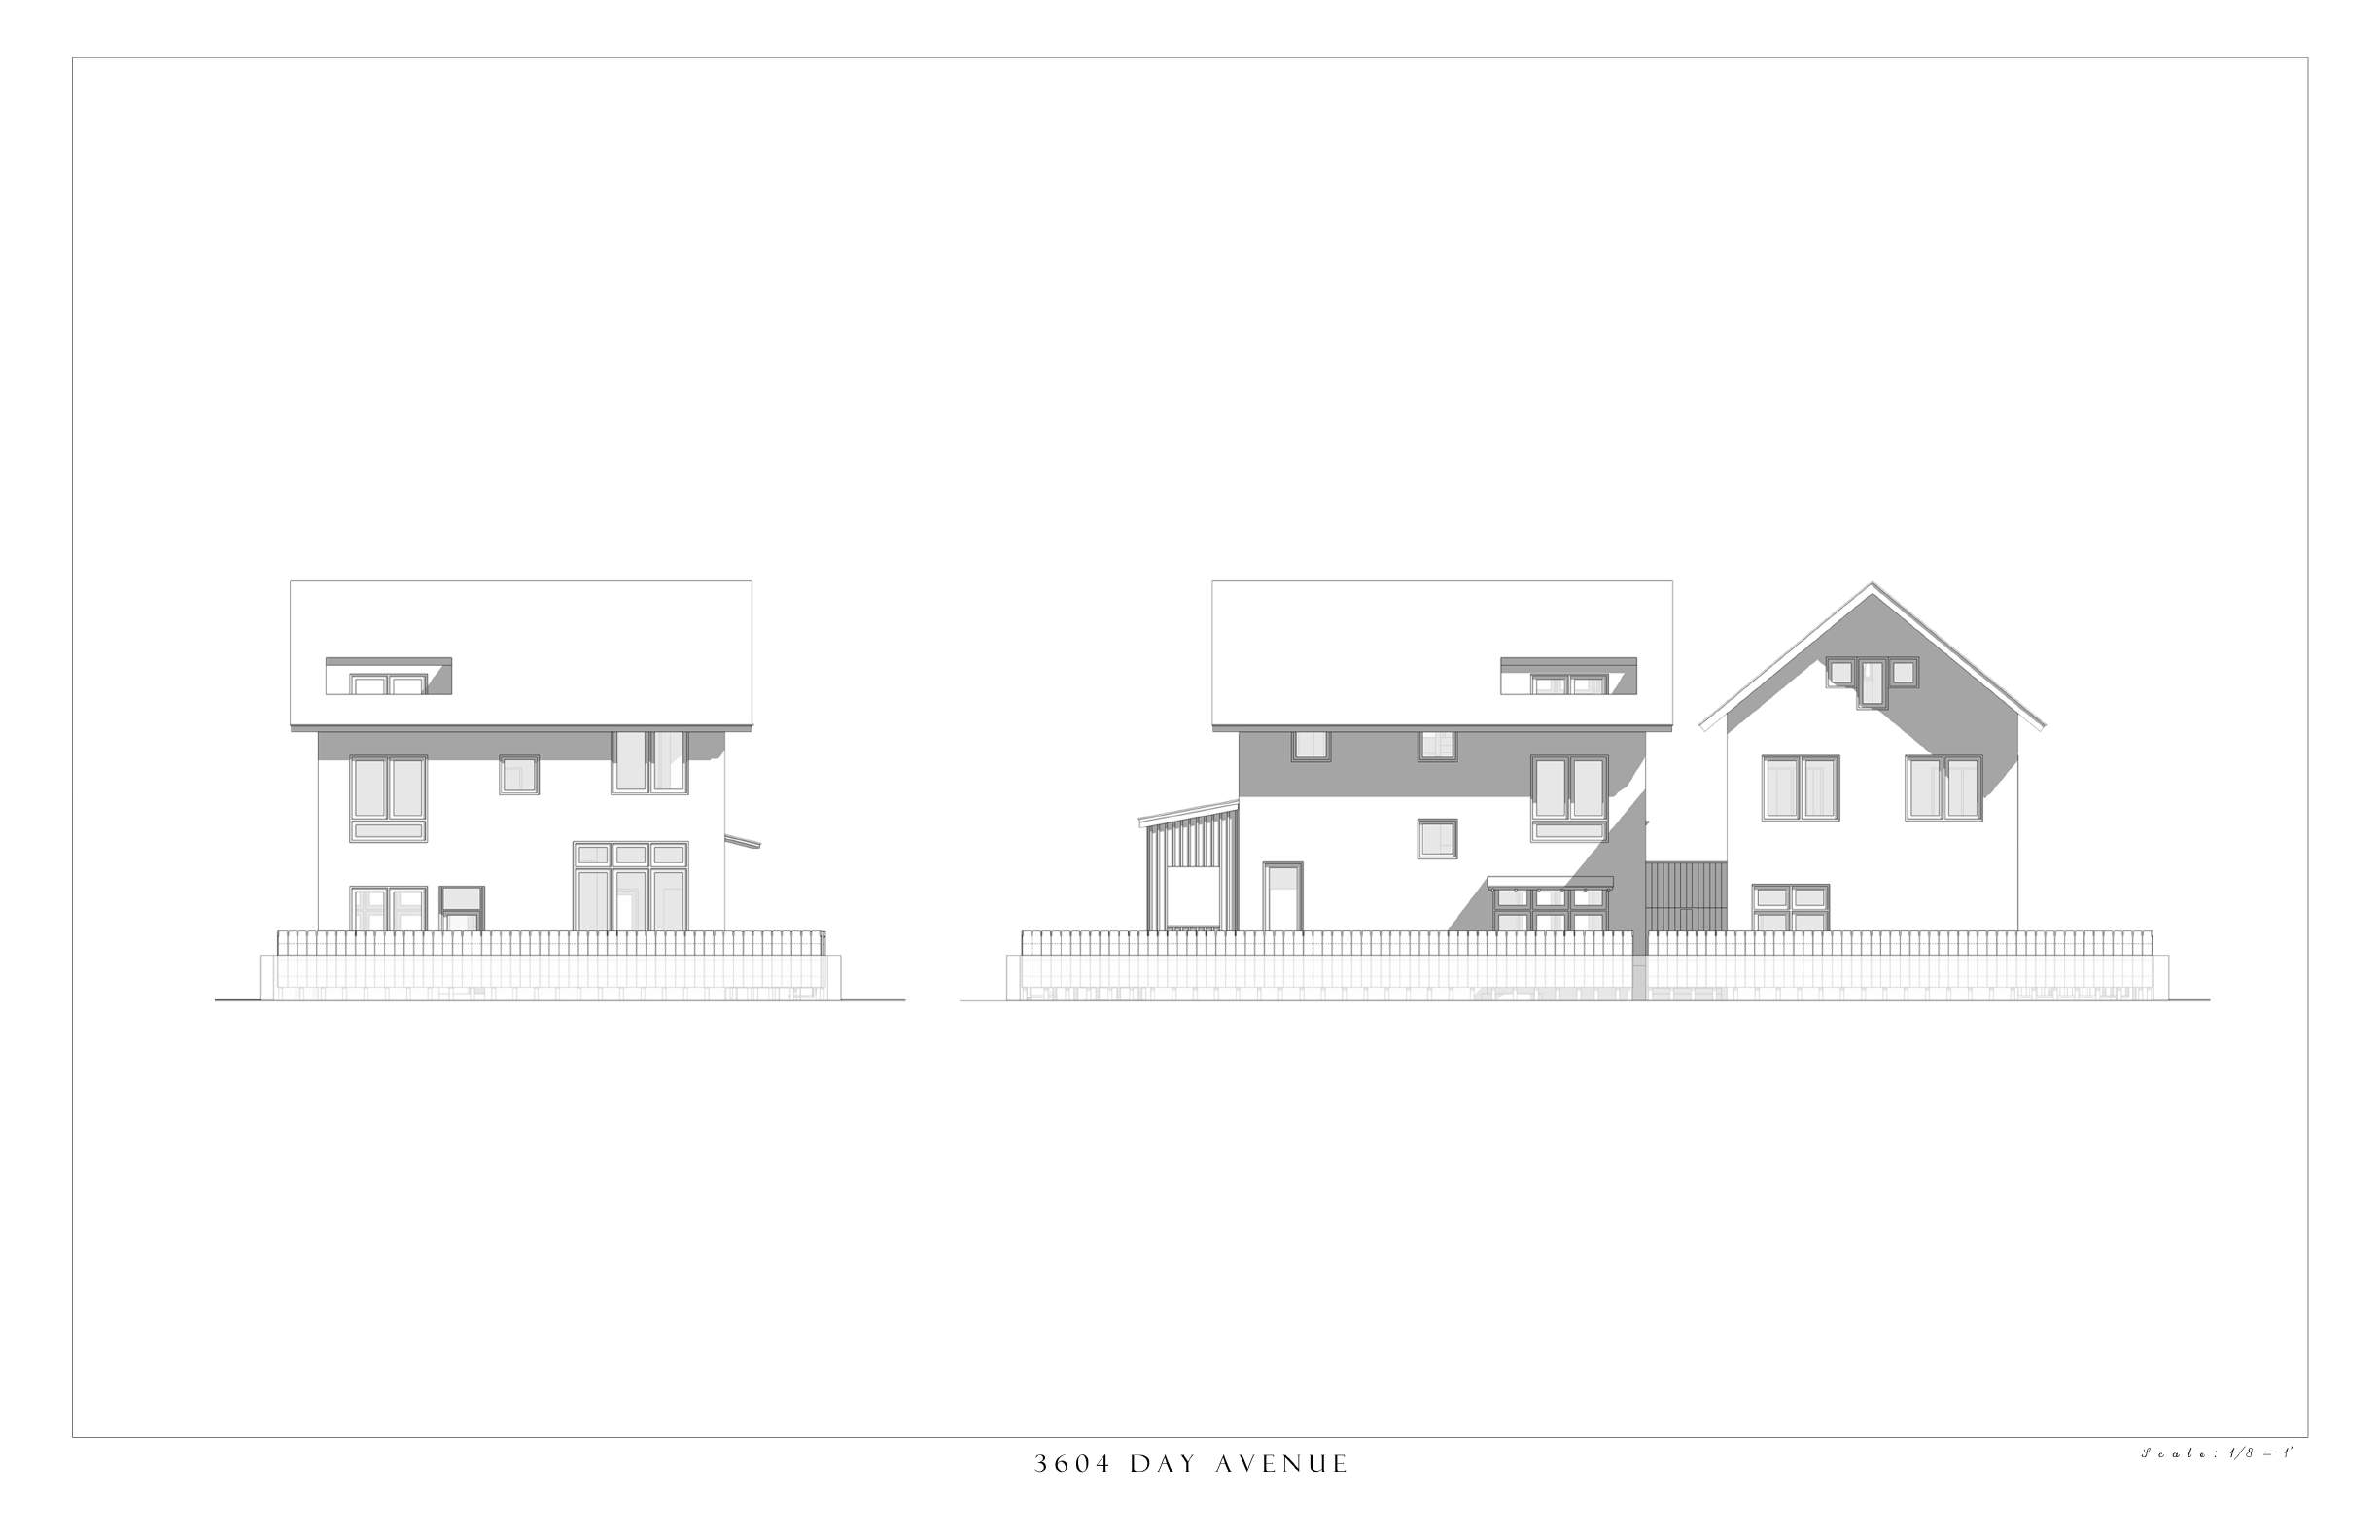 South and West Elevations